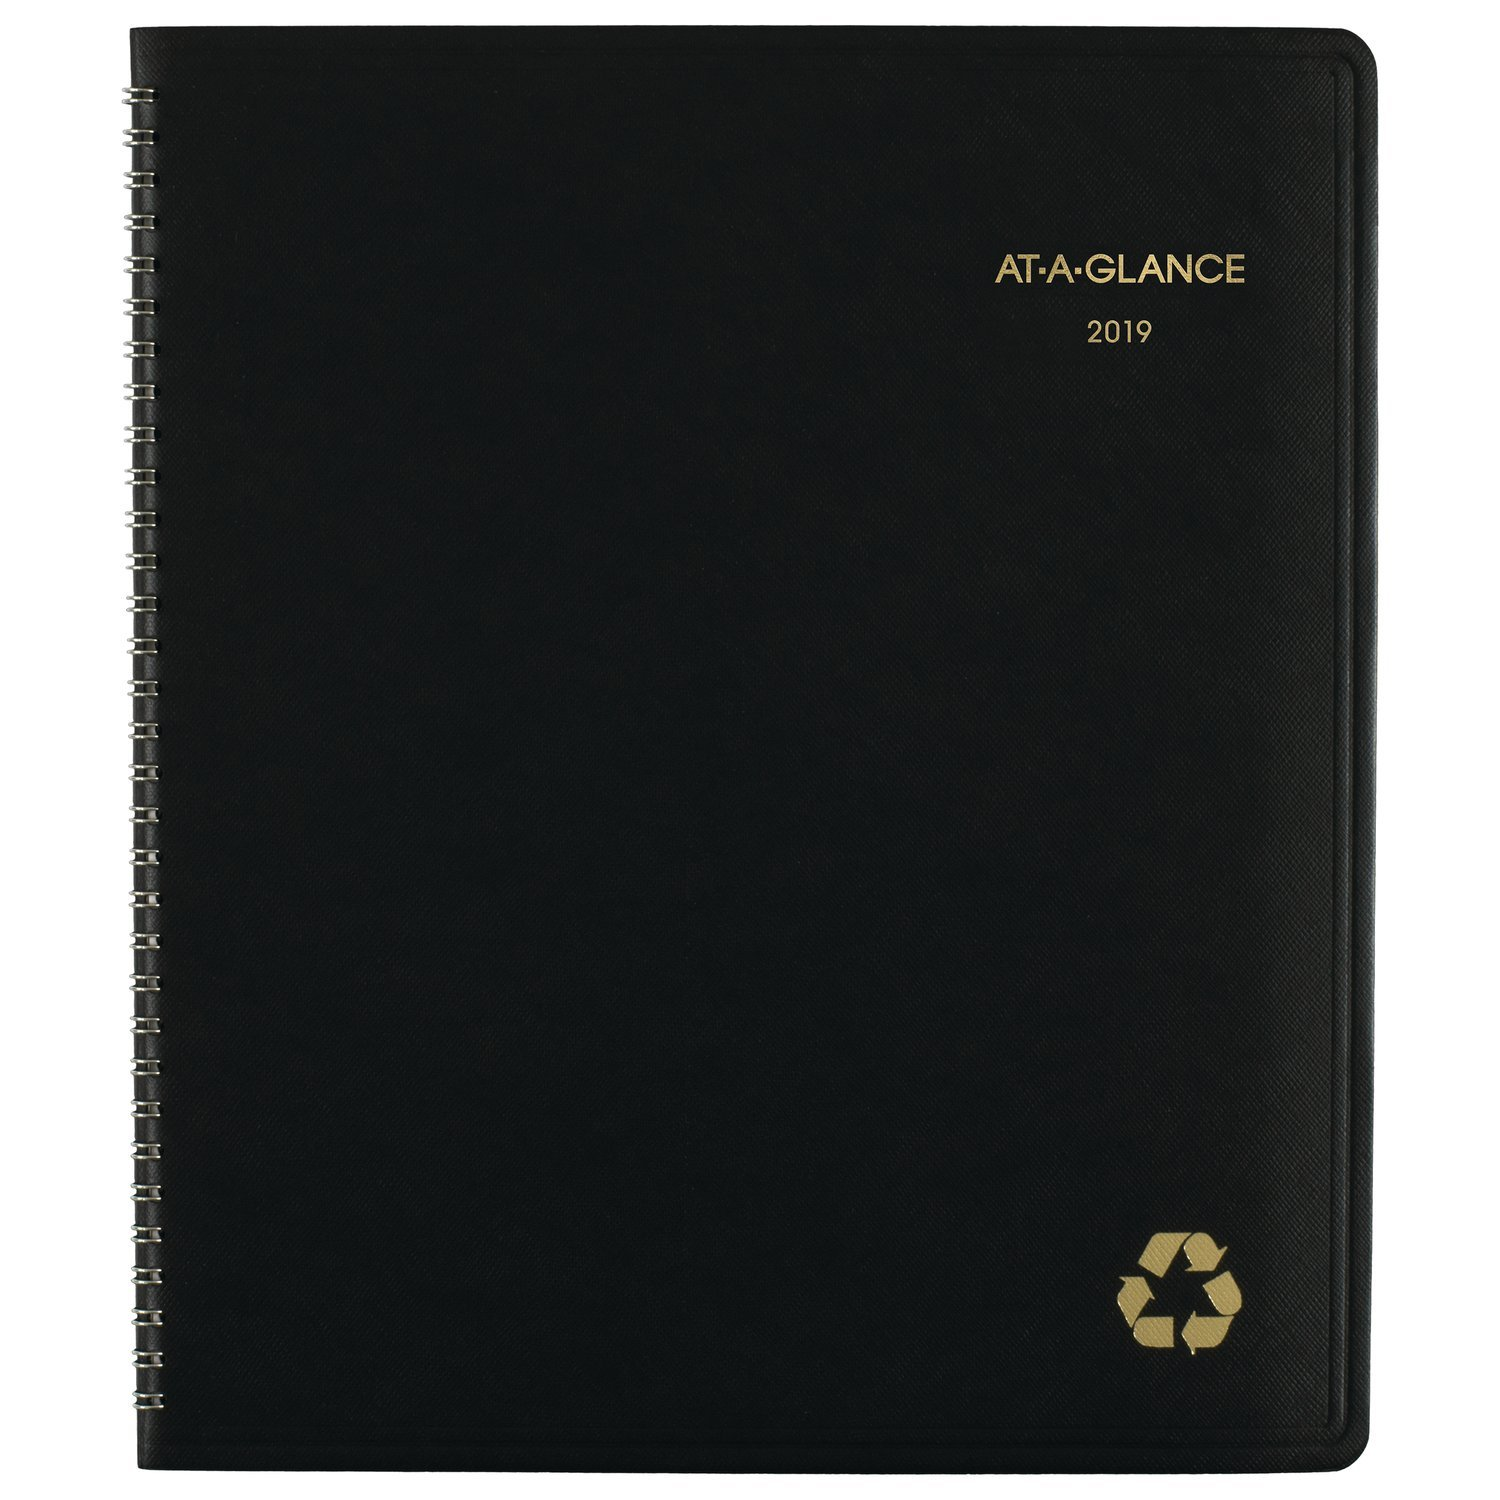 AT-A-GLANCE 2019-2020 Monthly Planner, 9'' x 11'', Large, Recycled, Black (70-260G-05)